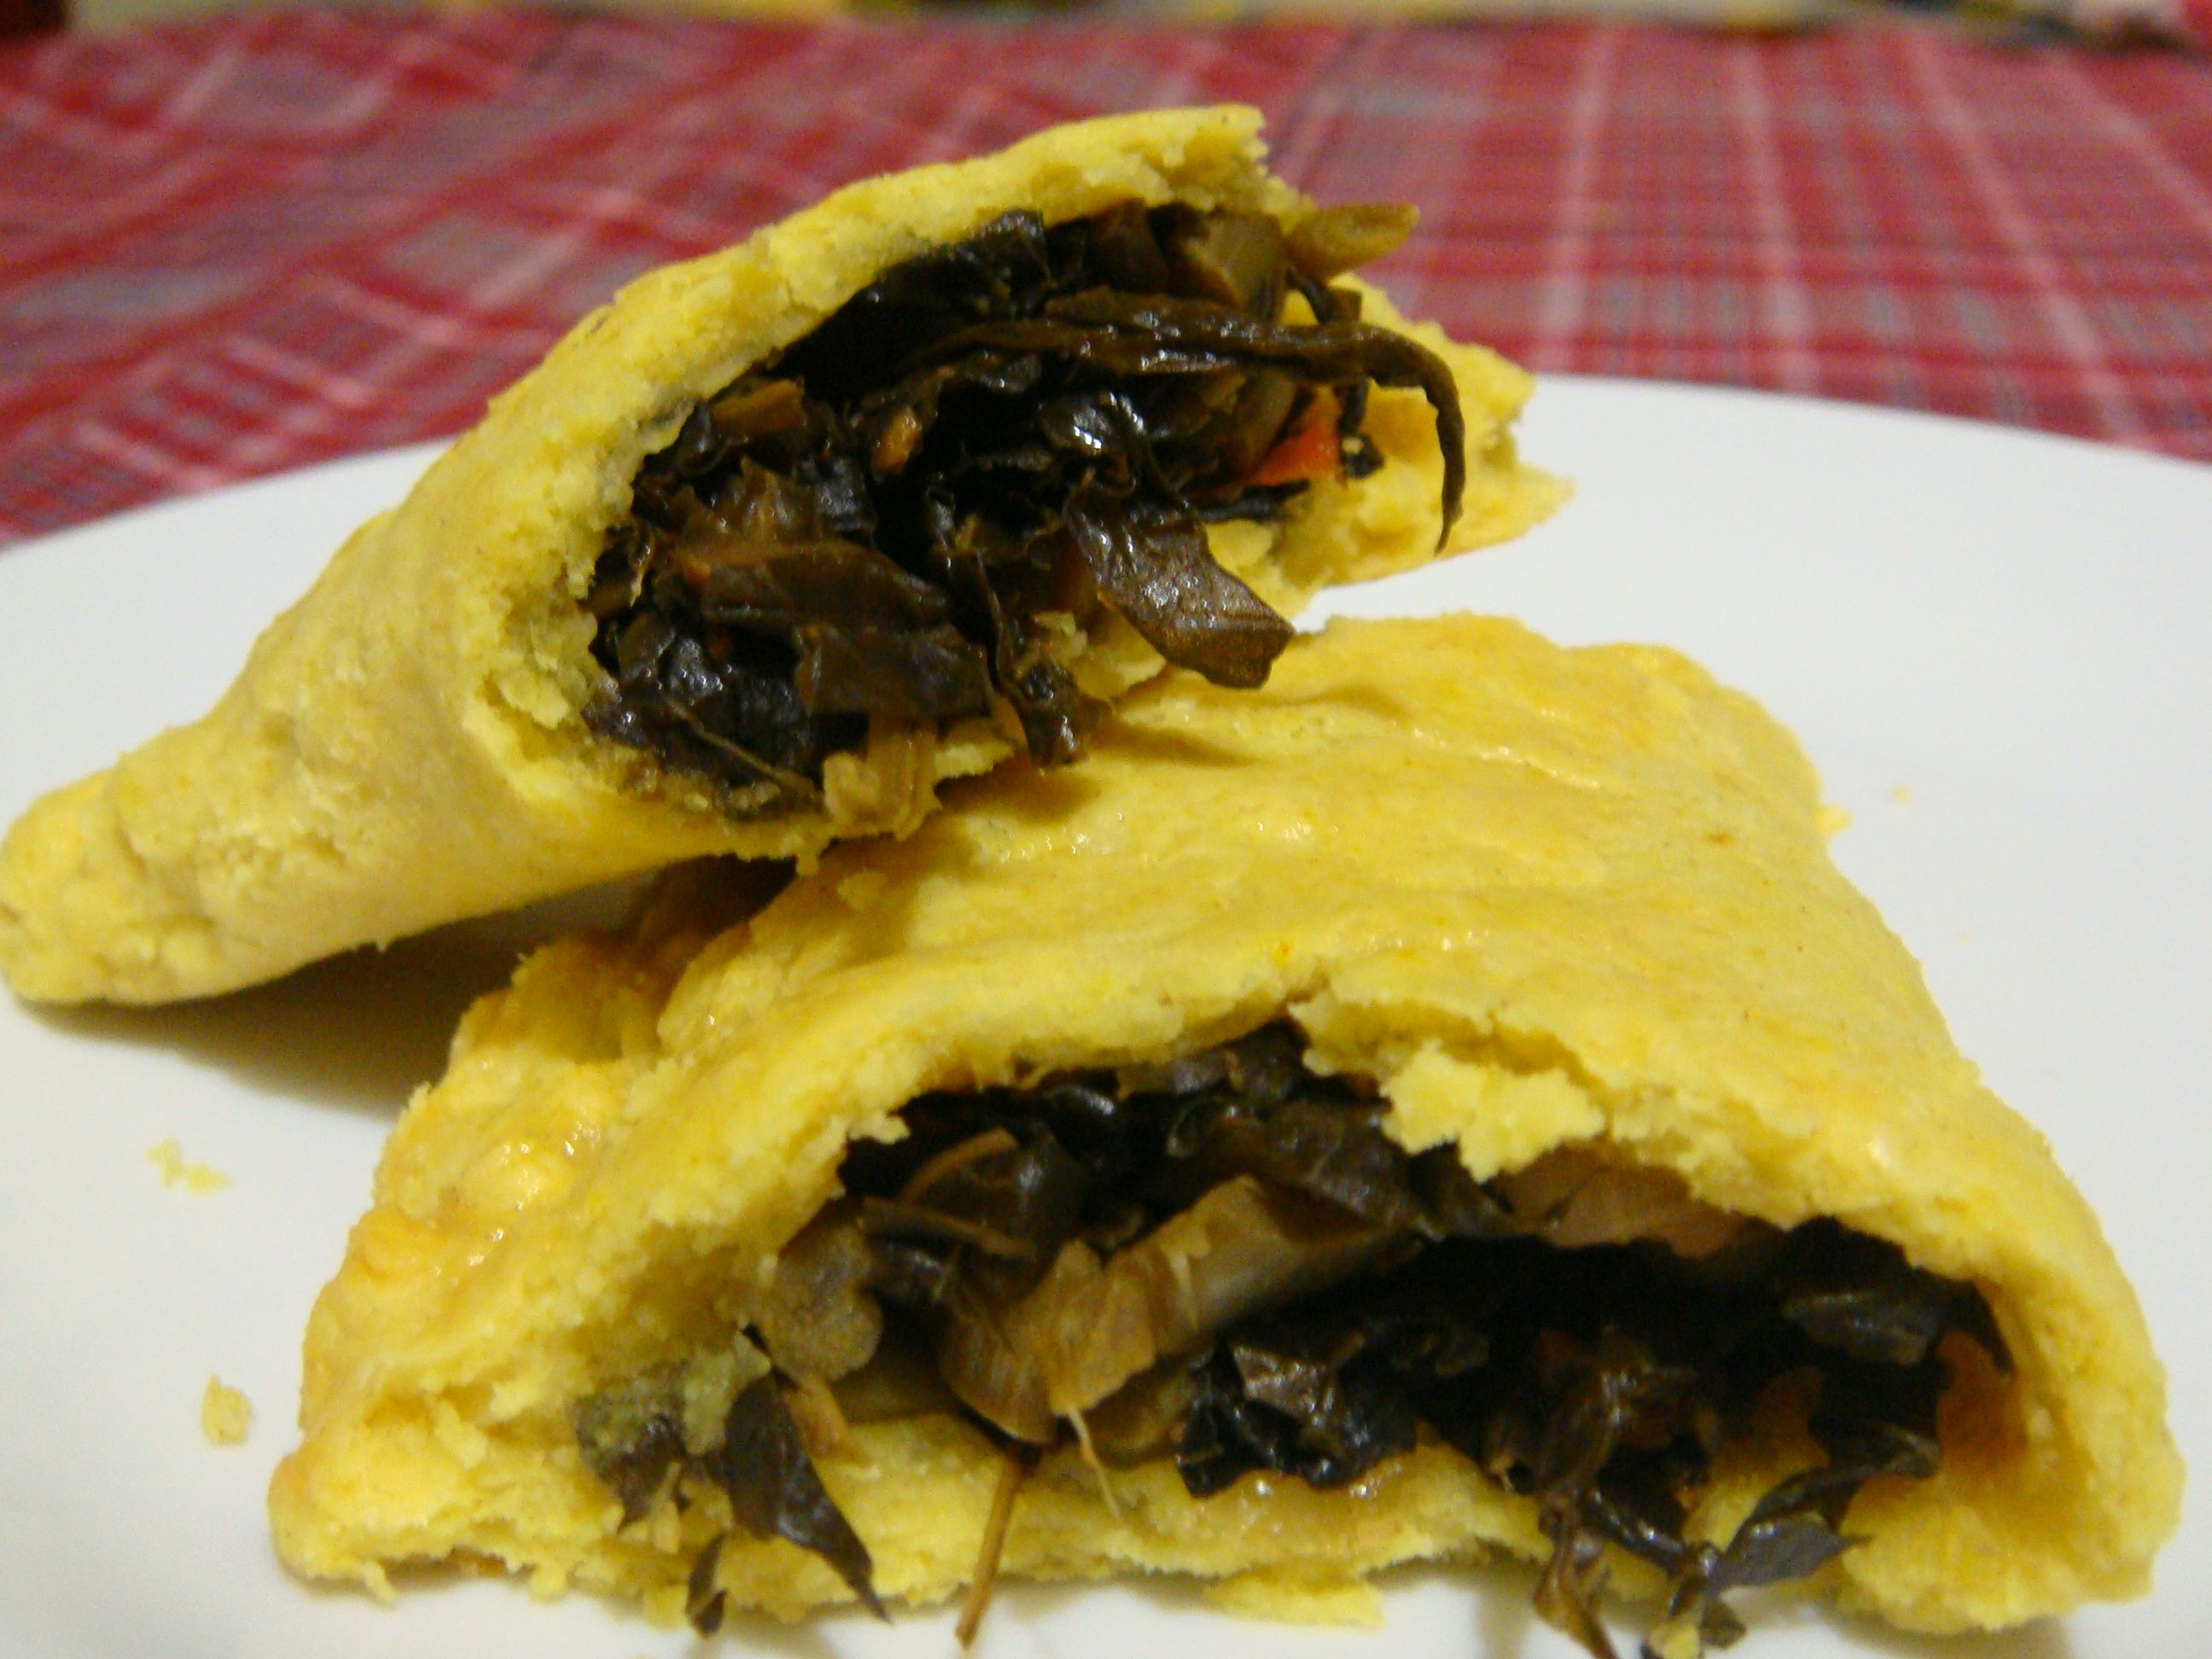 Meatless Mondays just got exiting with this Jamaican callaloo patty ...